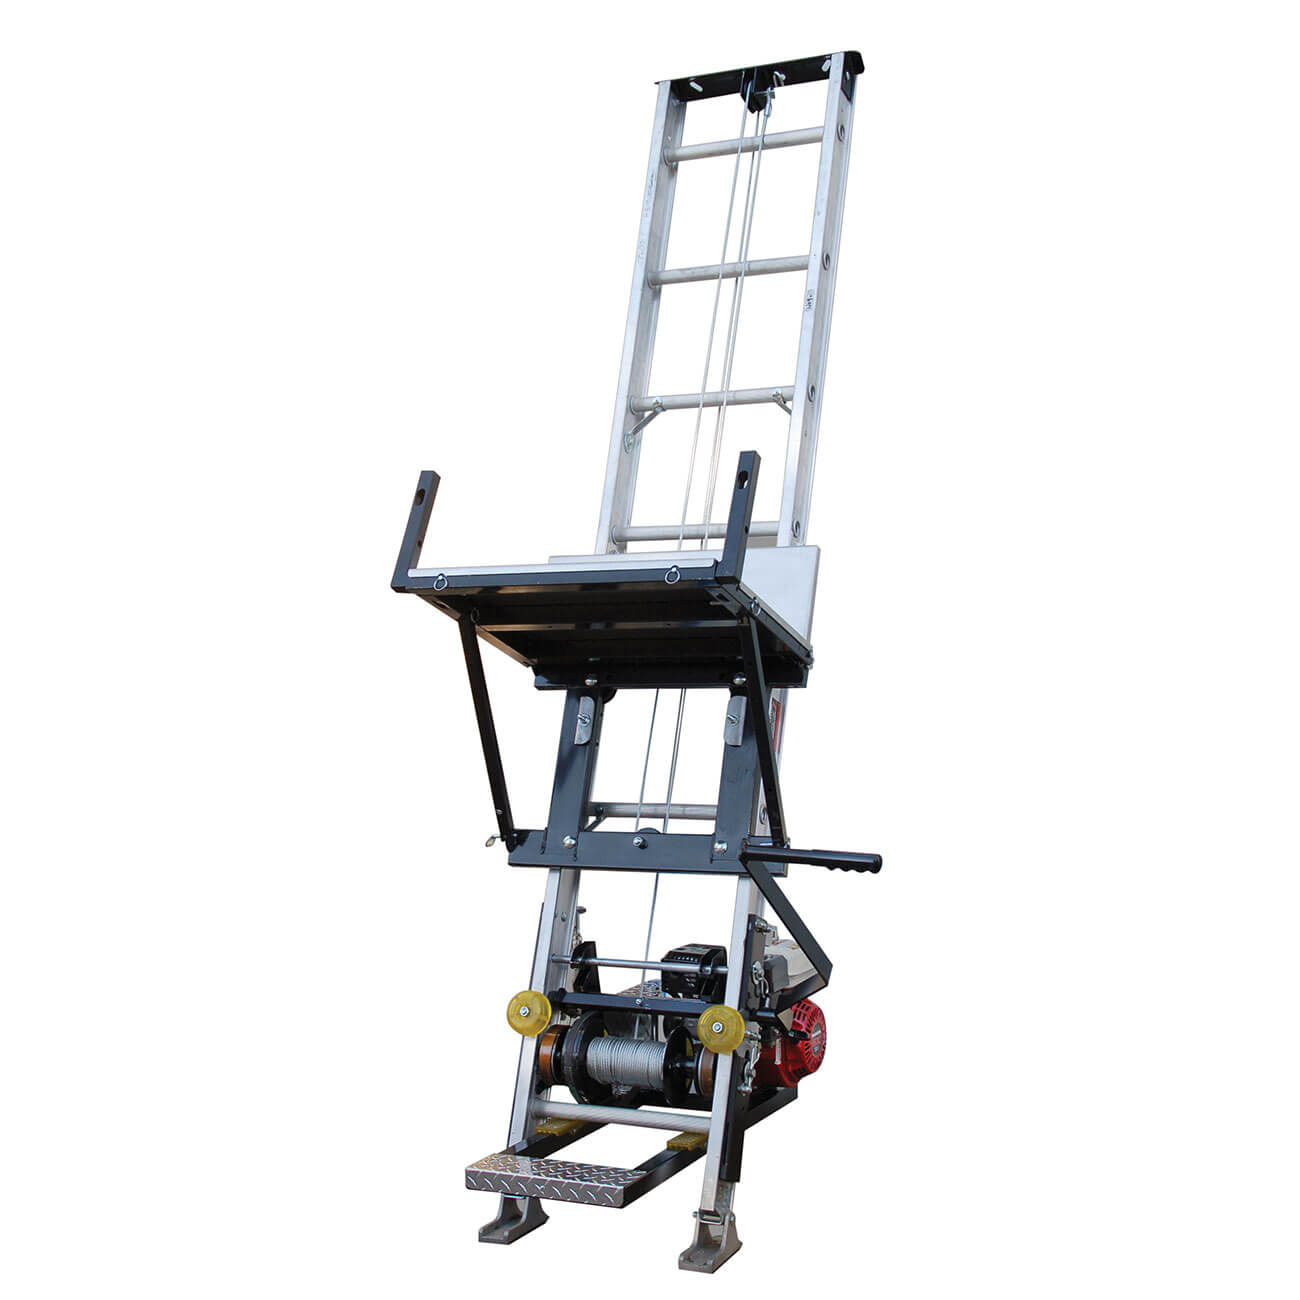 Tranzsporter Tp400 400lb 28ft Ladder Hoist From Buymbs Com